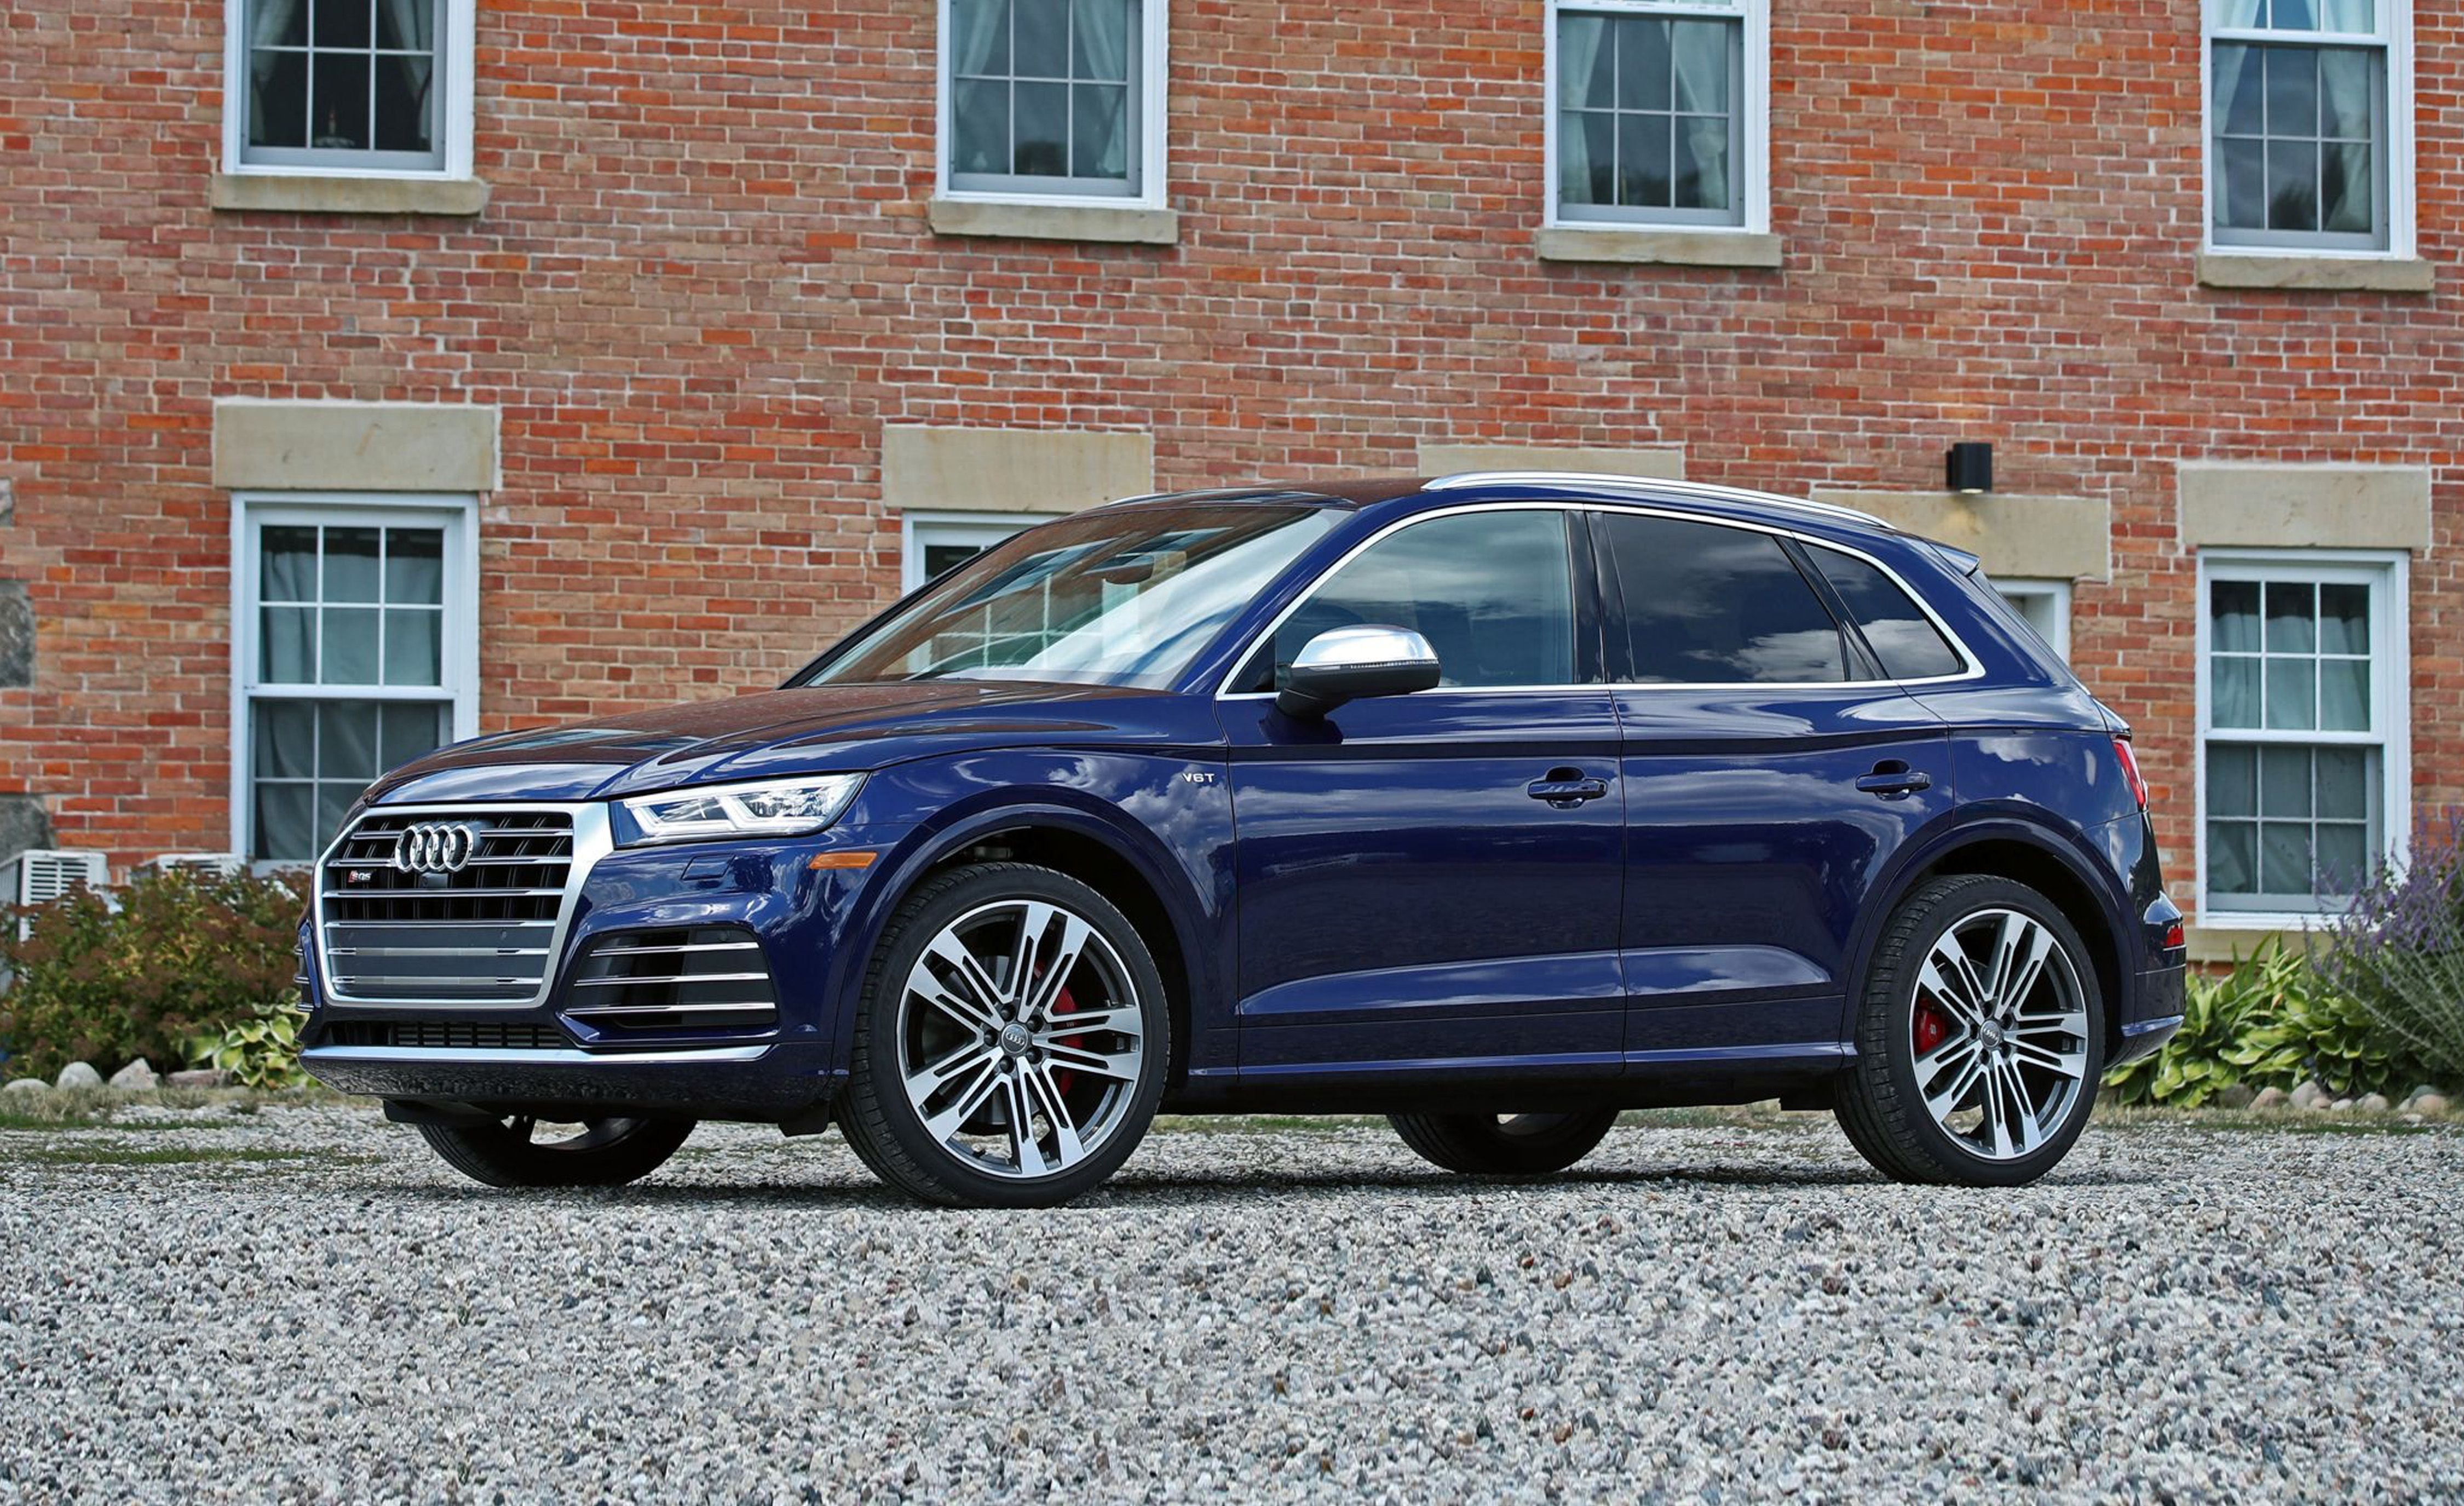 2019 Audi Sq5 Reviews Audi Sq5 Price Photos And Specs Car And